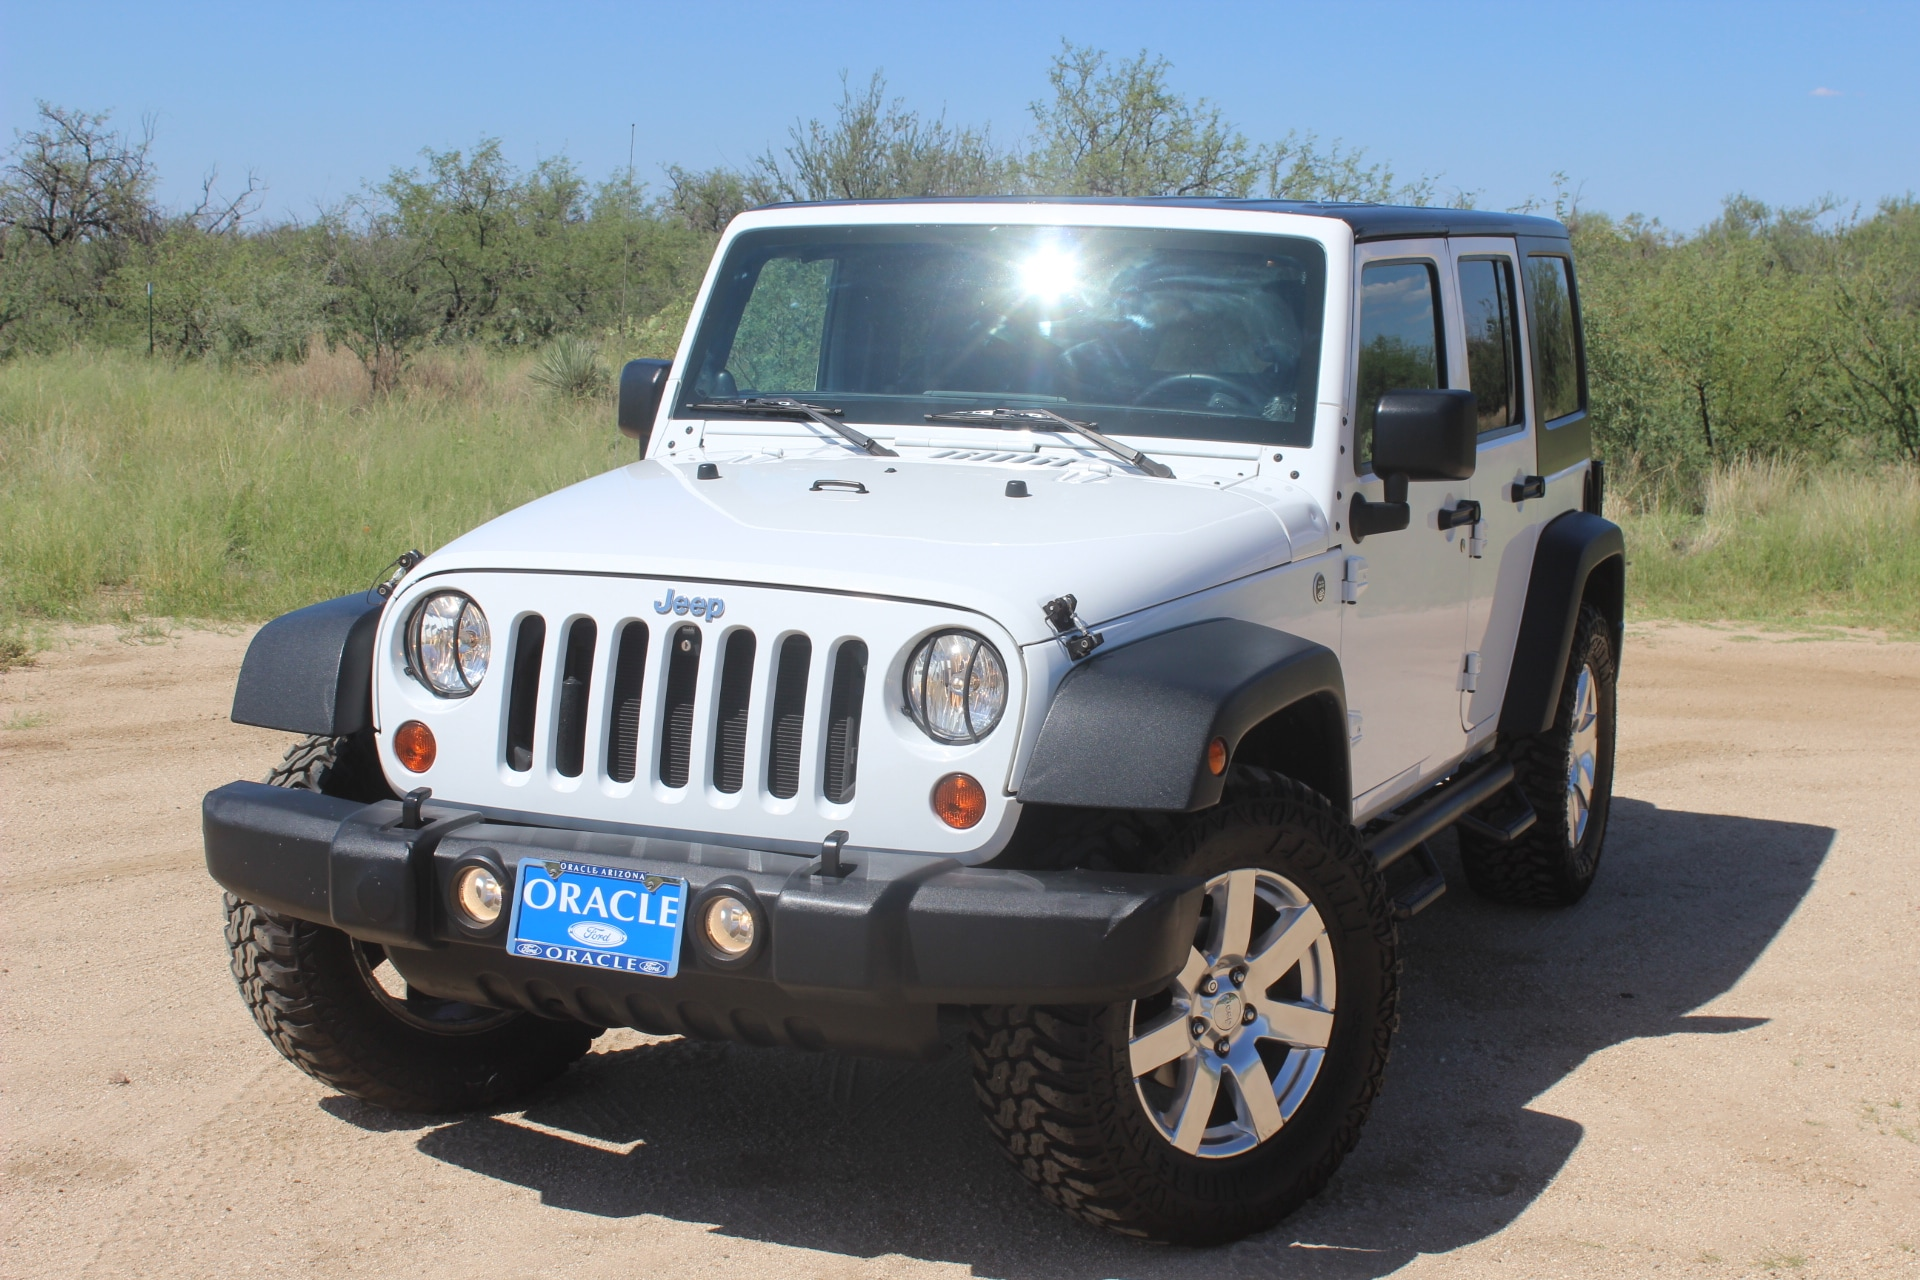 Used 2012 Jeep Wrangler Unlimited Sport SUV for sale in Oracle, AZ